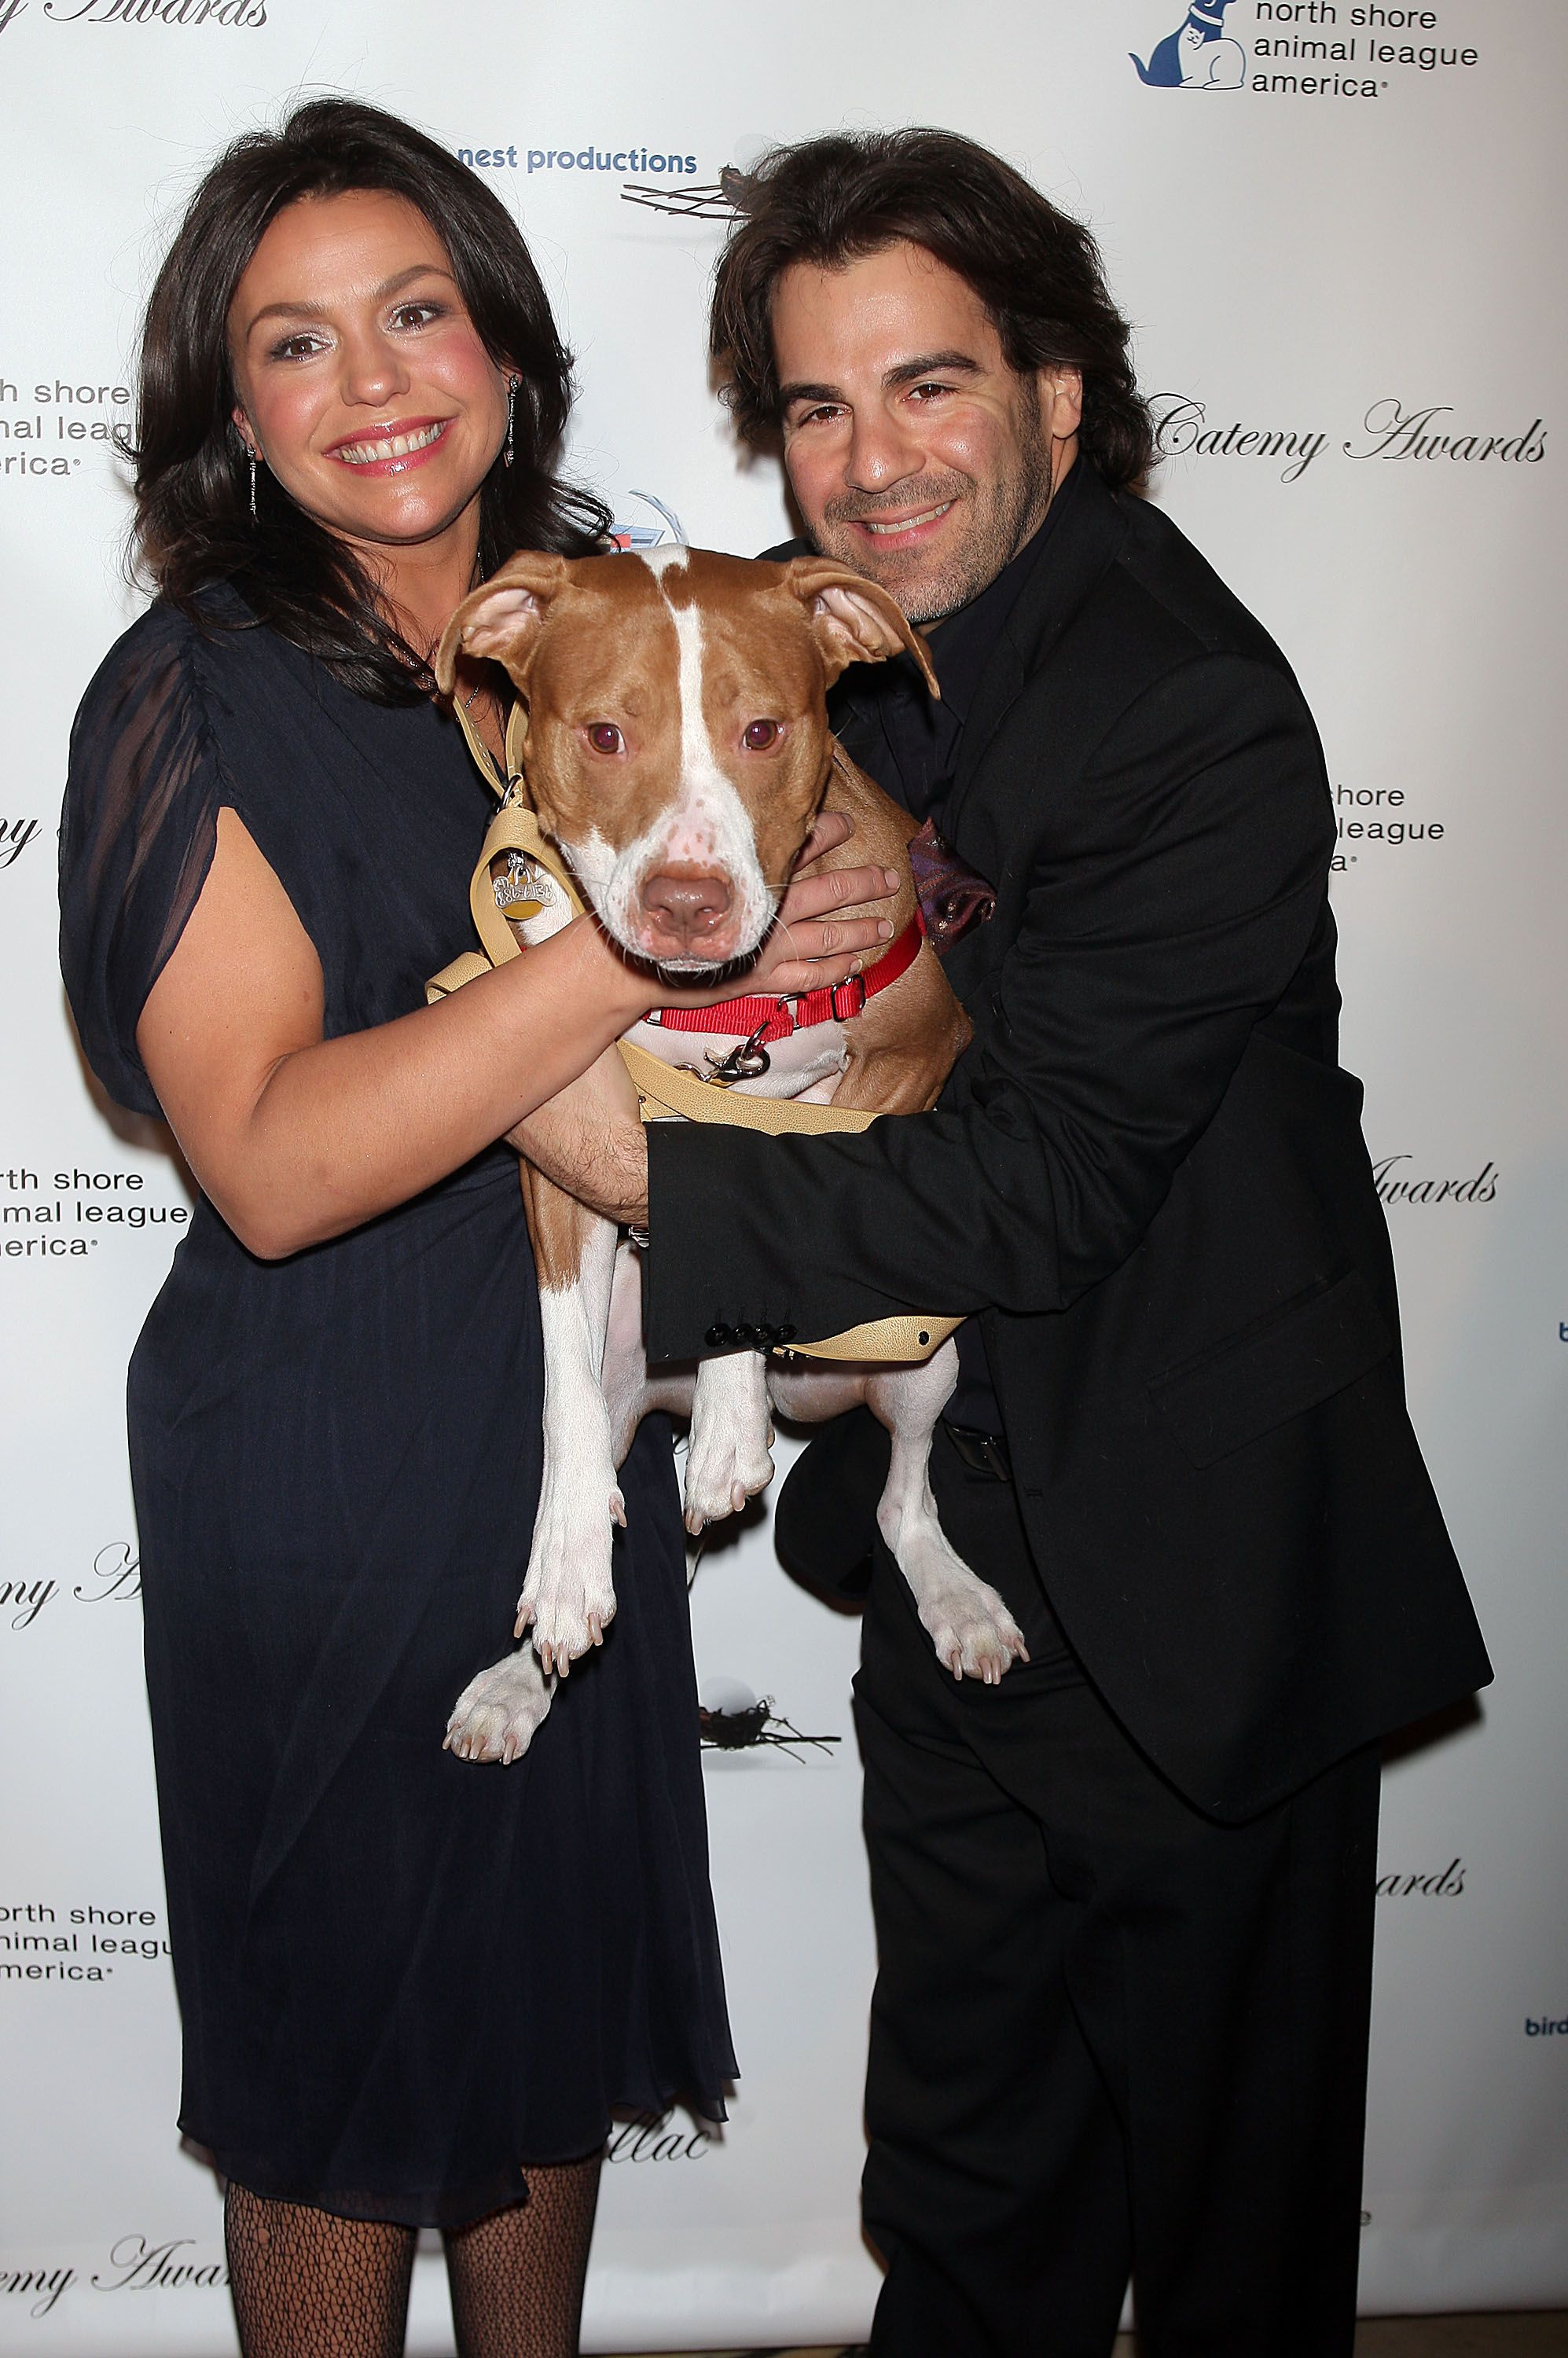 y Rachael Ray and John Cusimano and their dog Isaboo at the North Shore Animal League America's 2nd annual DogCatemy Awards in 2007 in New York | Source: Getty Images